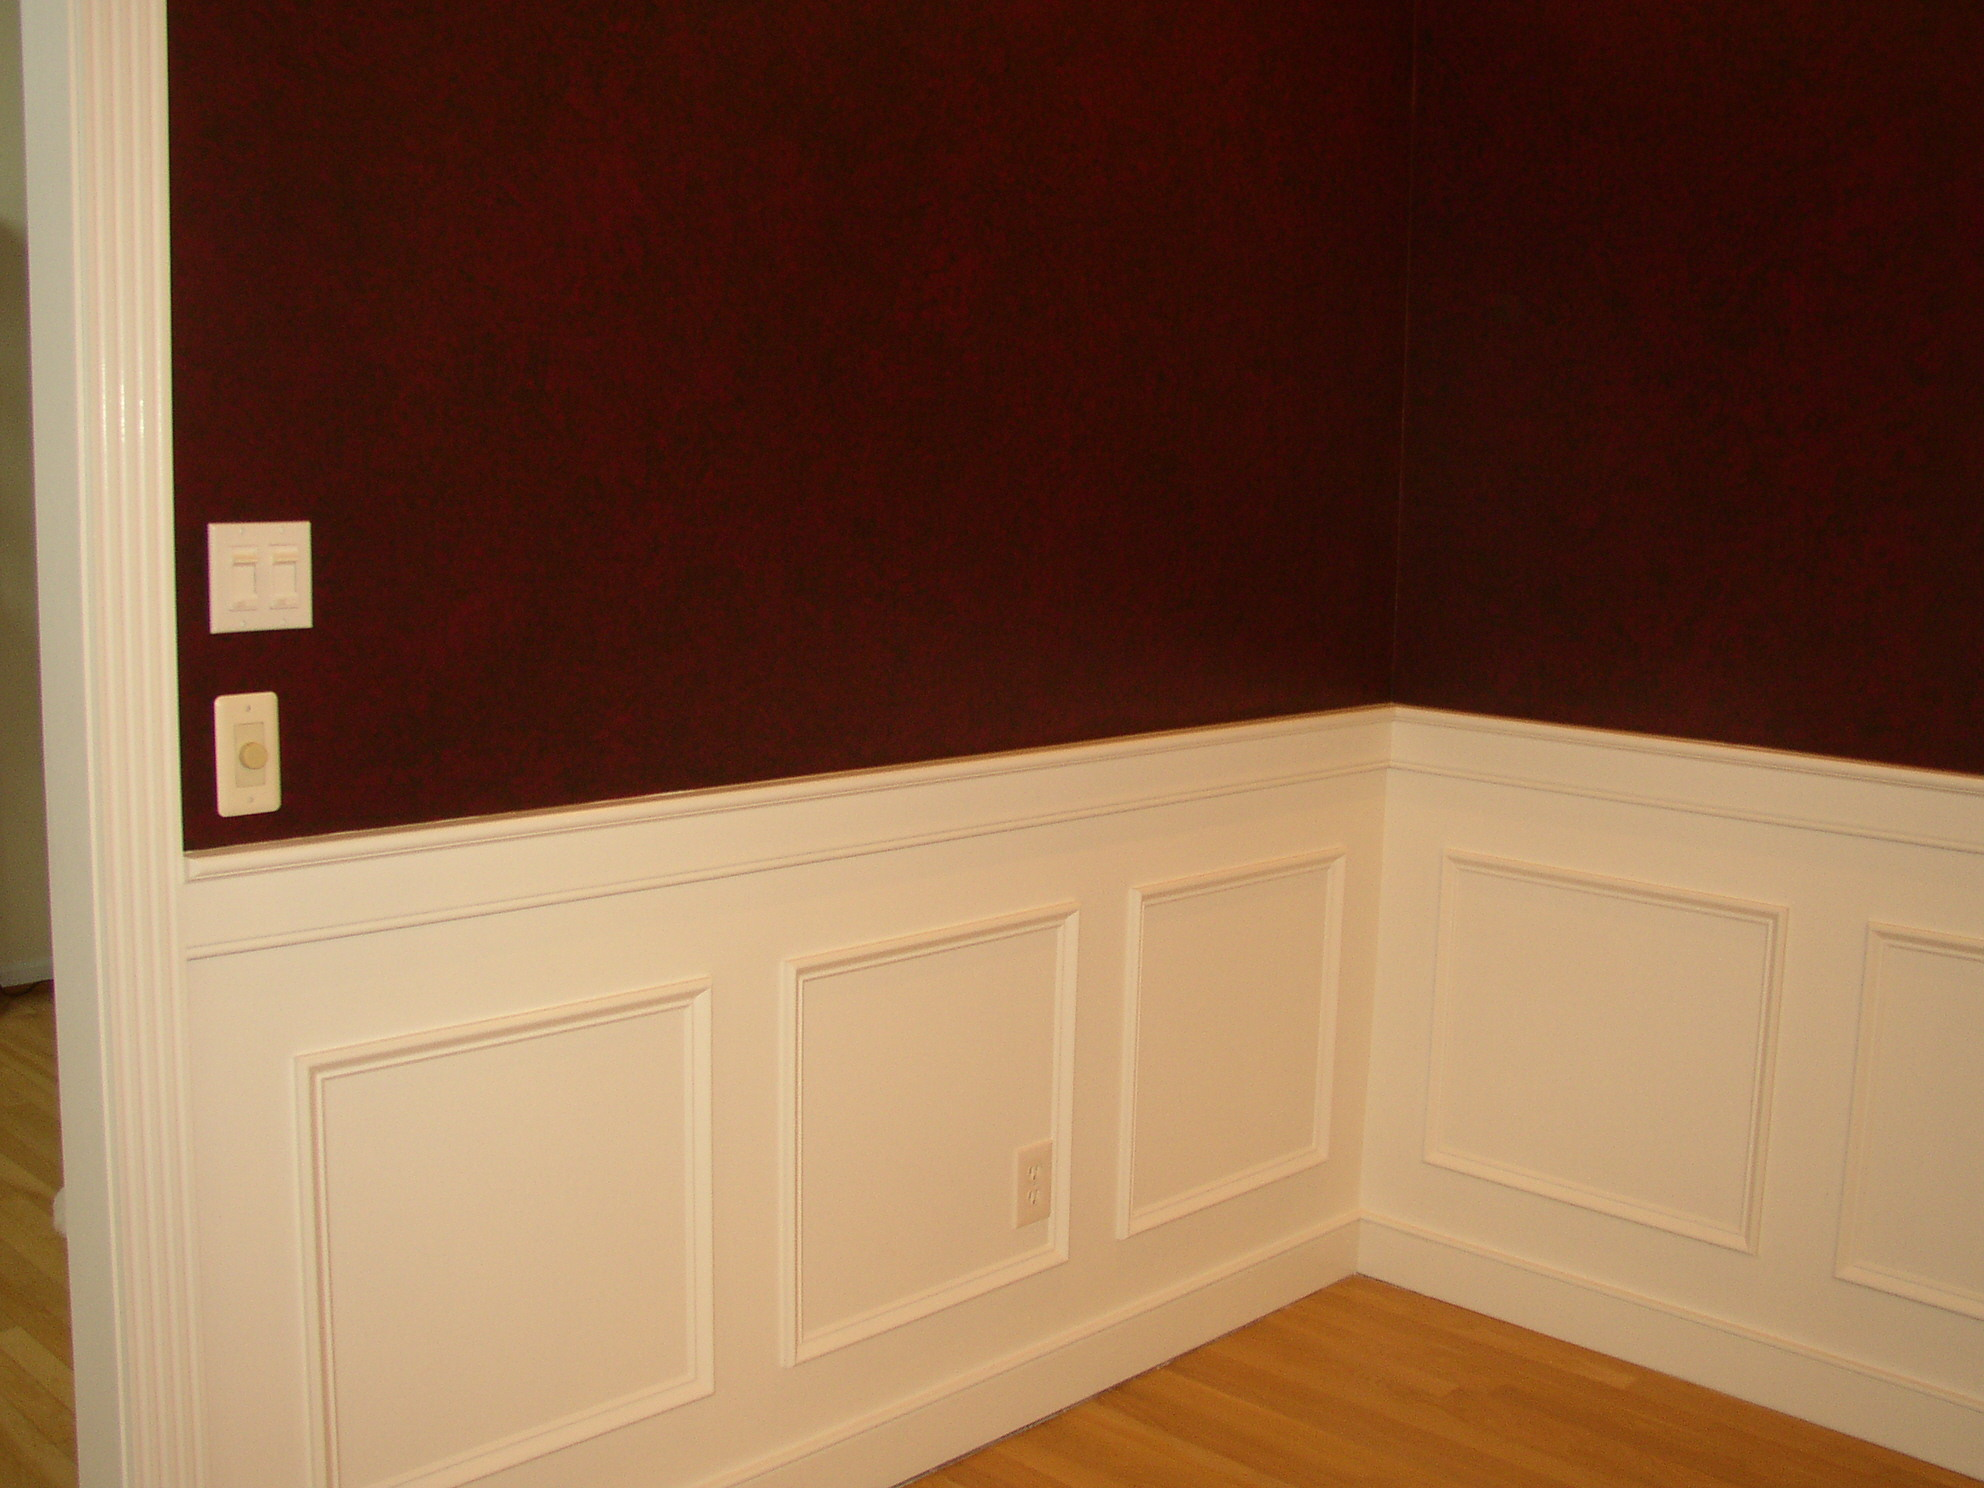 Wainscoting Ideas With Maroon Wall And Wooden Floor For Living Room Interior  Design Ideas